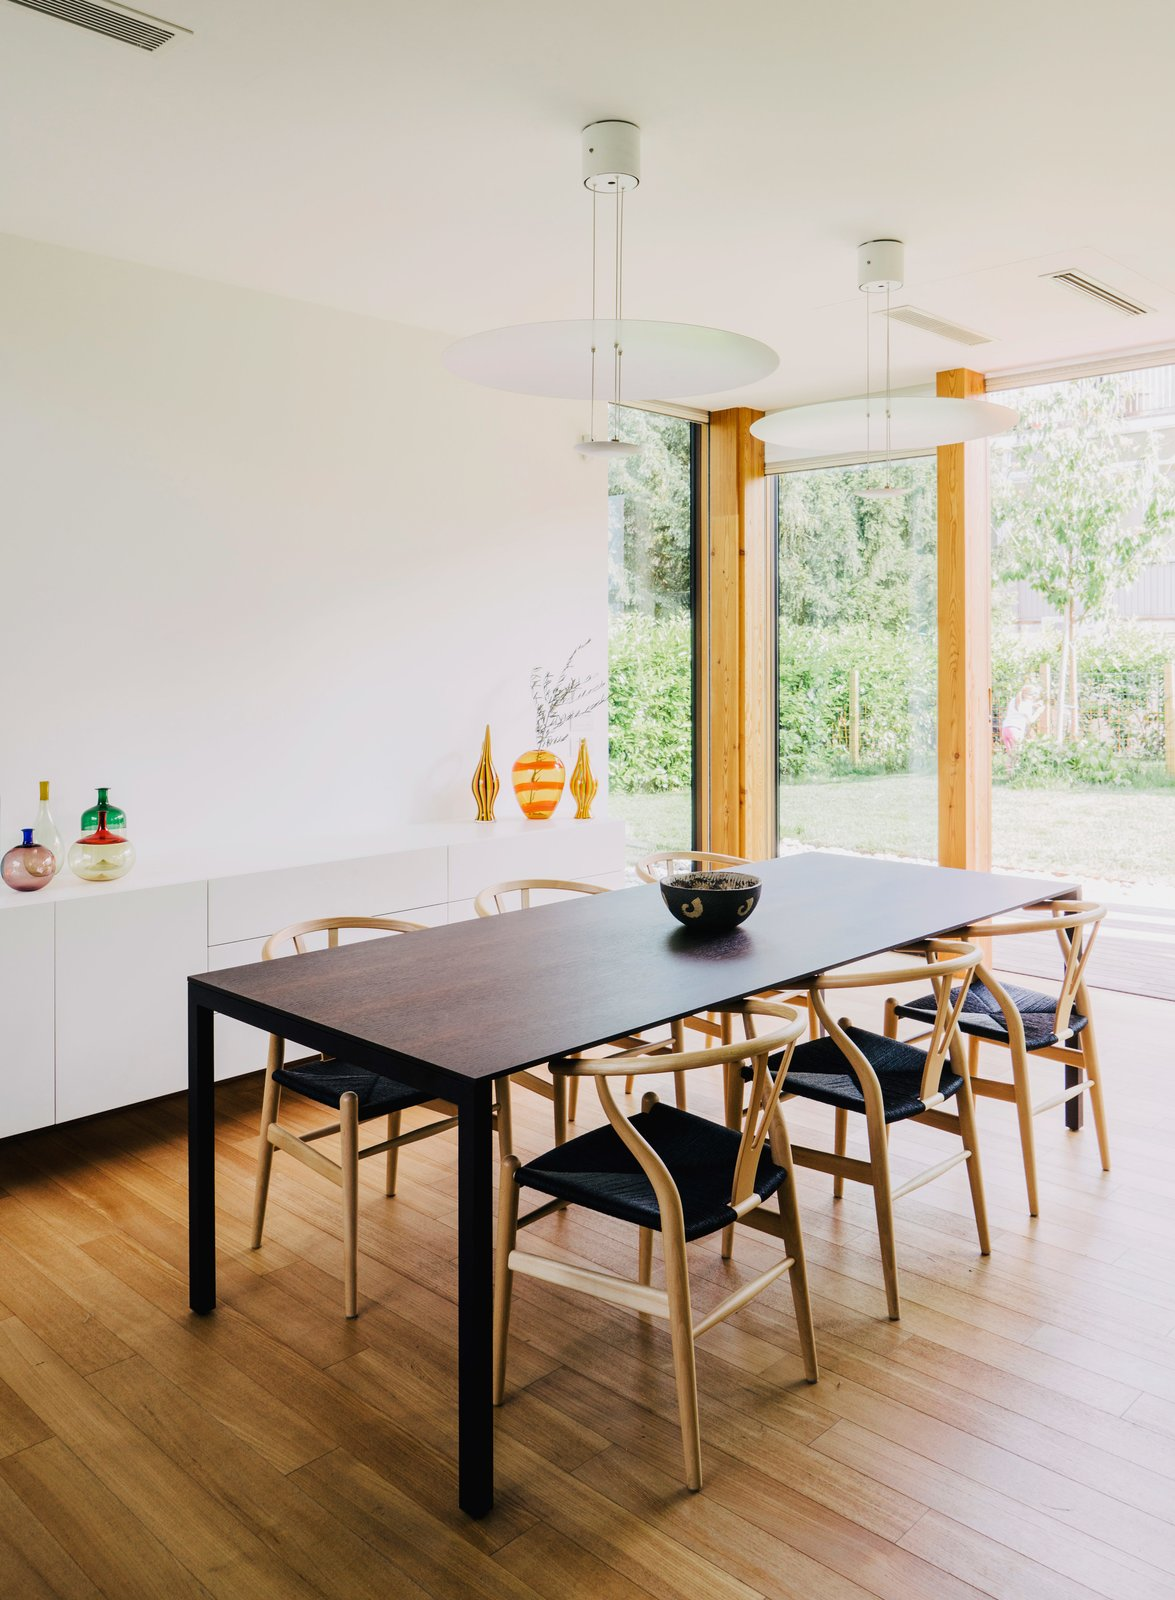 In the dining room, Wishbone chairs by Hans J. Wegner surround a 195 Naan table by Piero Lissoni. Tagged: Dining Room, Table, Storage, Chair, Medium Hardwood Floor, and Pendant Lighting.  In the Home by Carl Hansen & Son from Could You Share Your Dream Home?